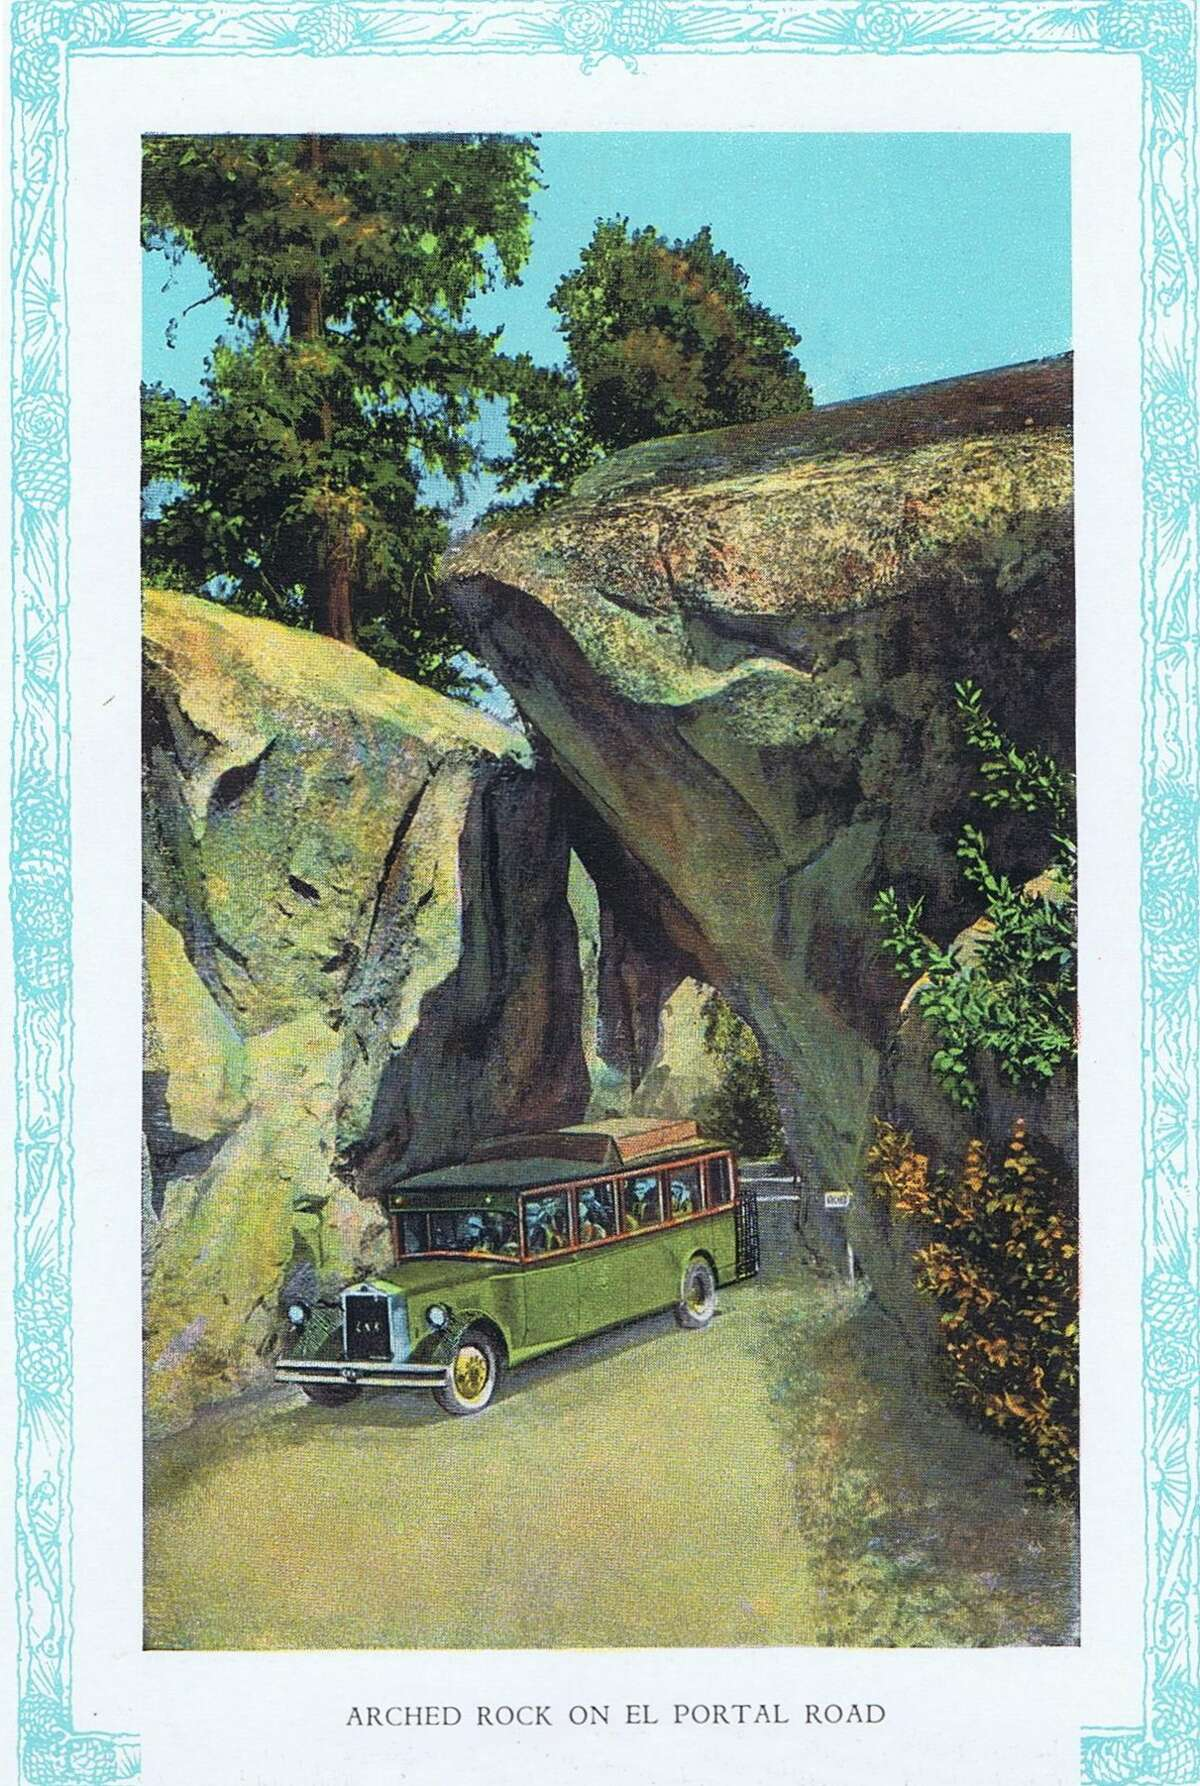 Arched Rock on El Portal Road, where cars can pass through this natural granite formation. Yosemite National Park souvenir brochure from the early 1920's.